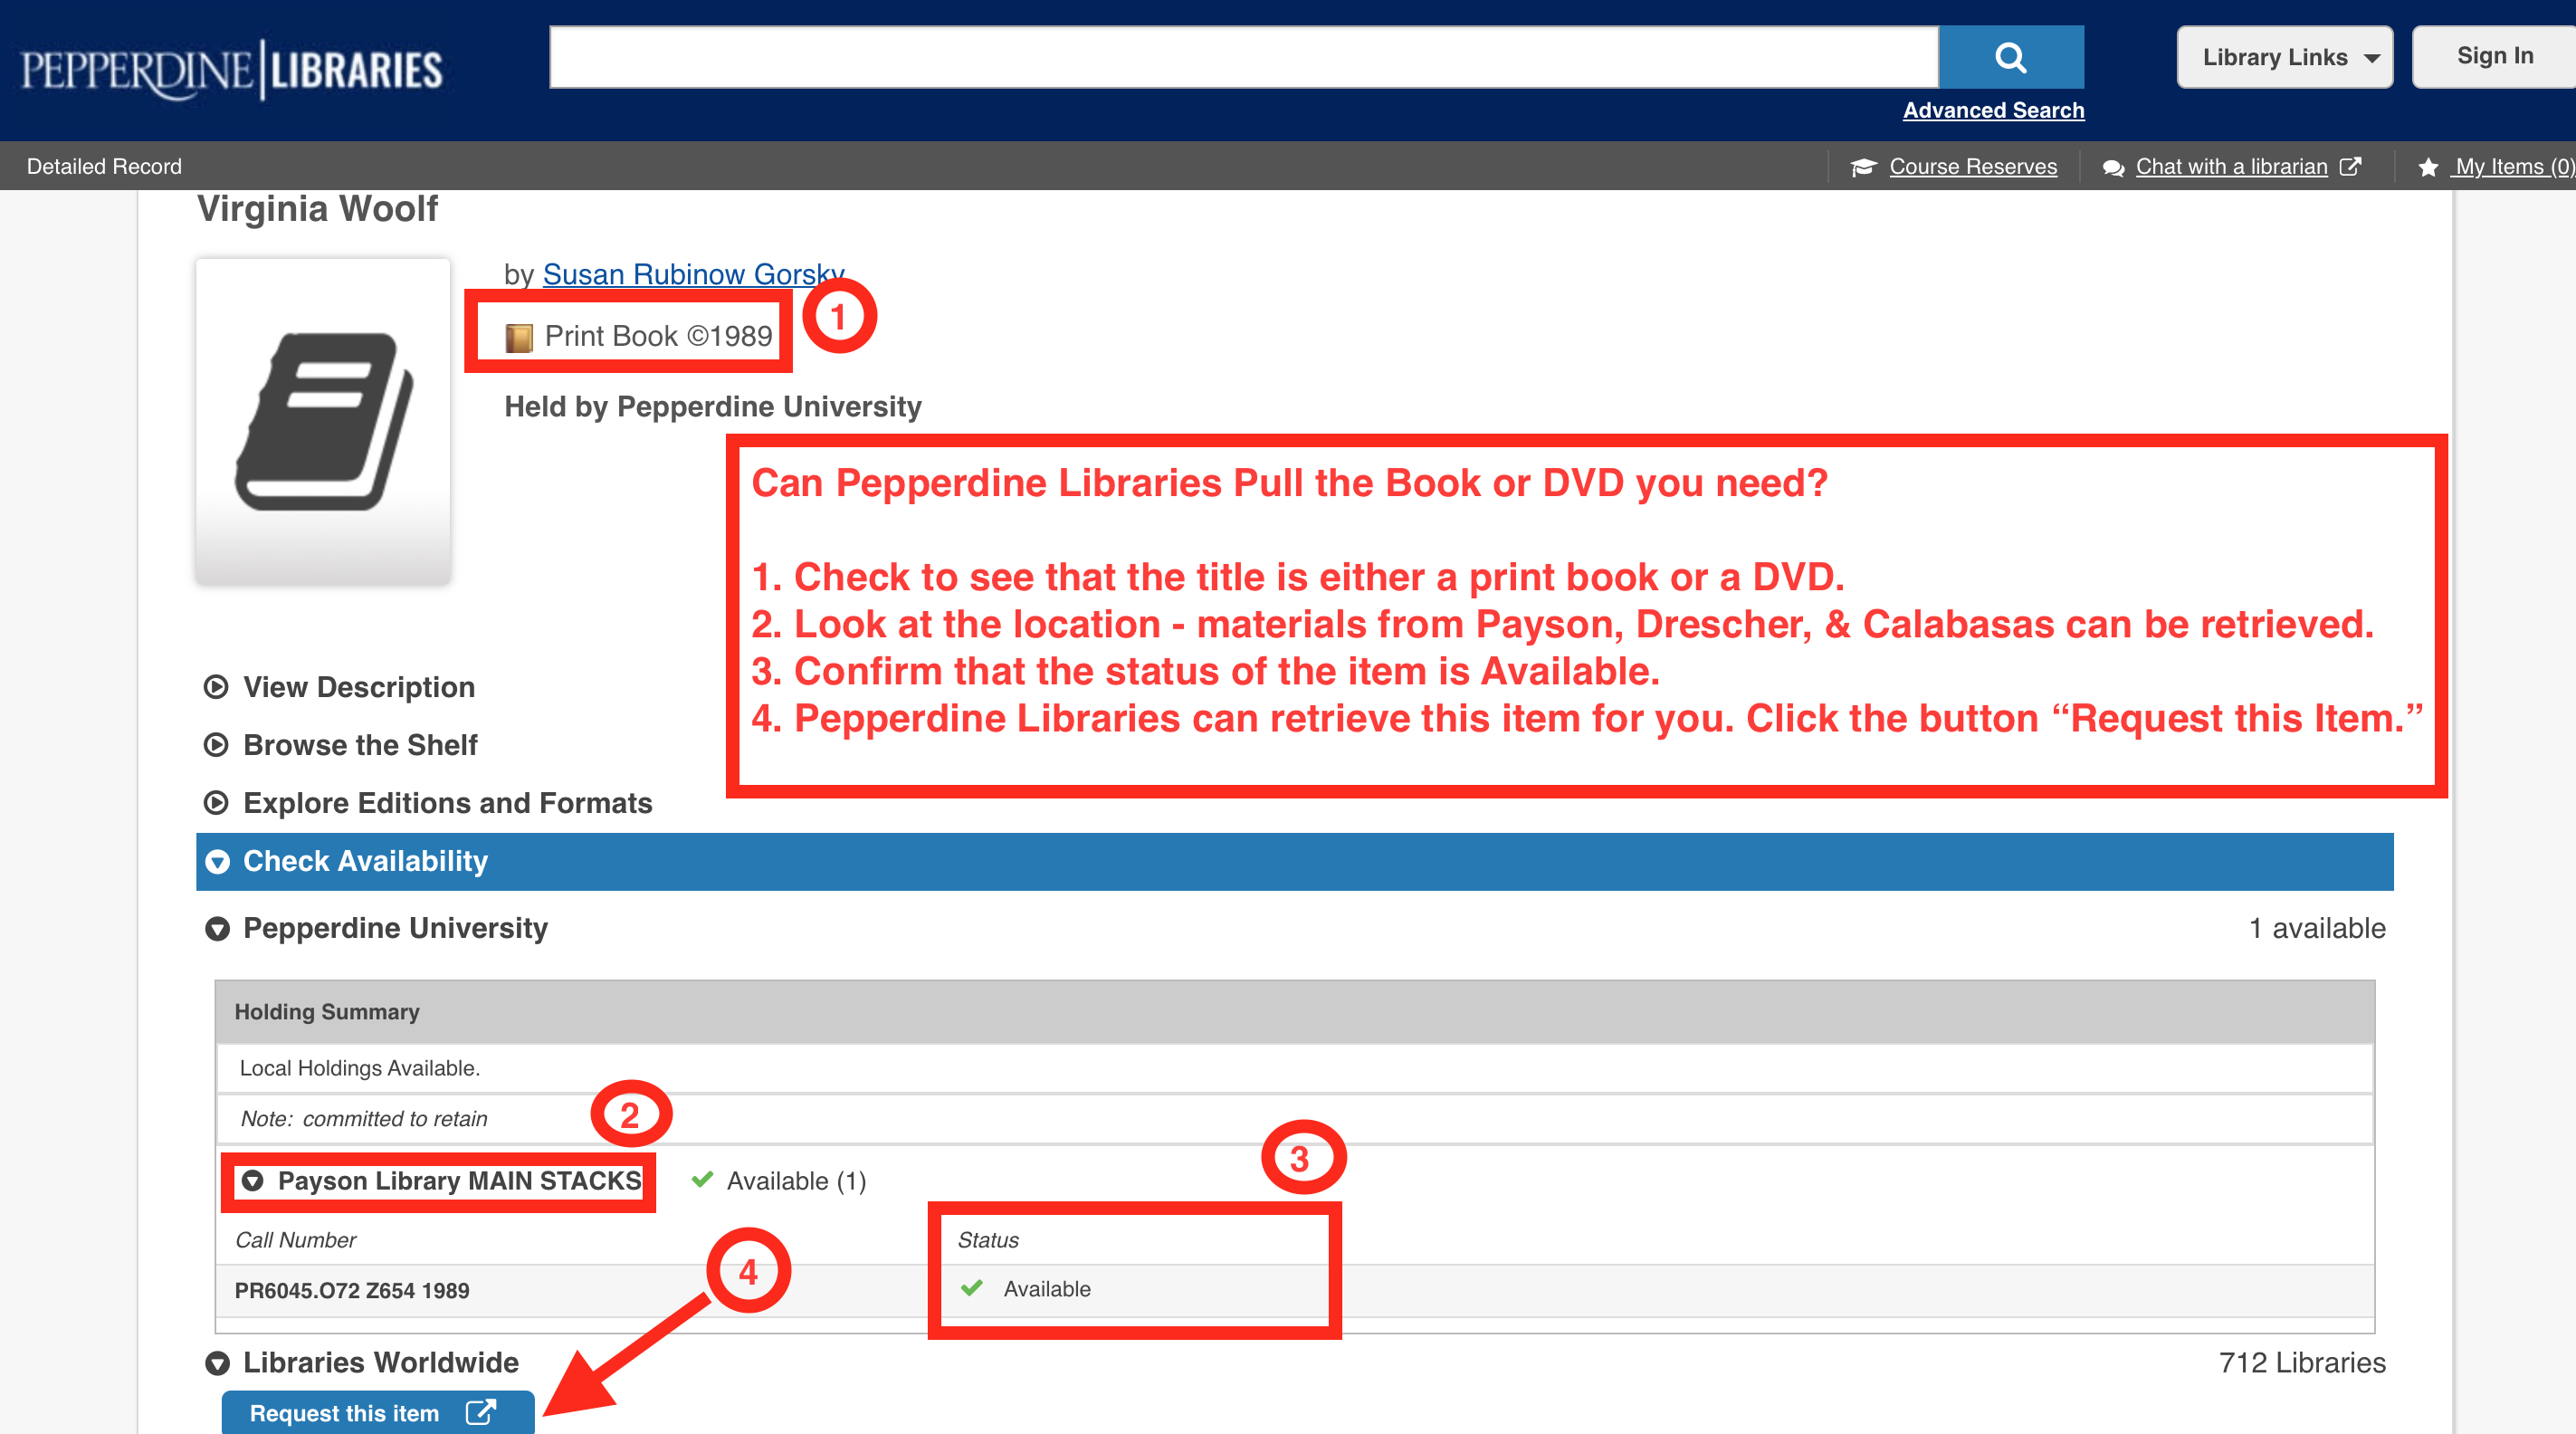 A screen capture that directs users to the different areas of the catalog that illustrate where to check to determine whether the title is a print book or DVD, held at Payson, Drescher, or Calabasas, and is currently Available.